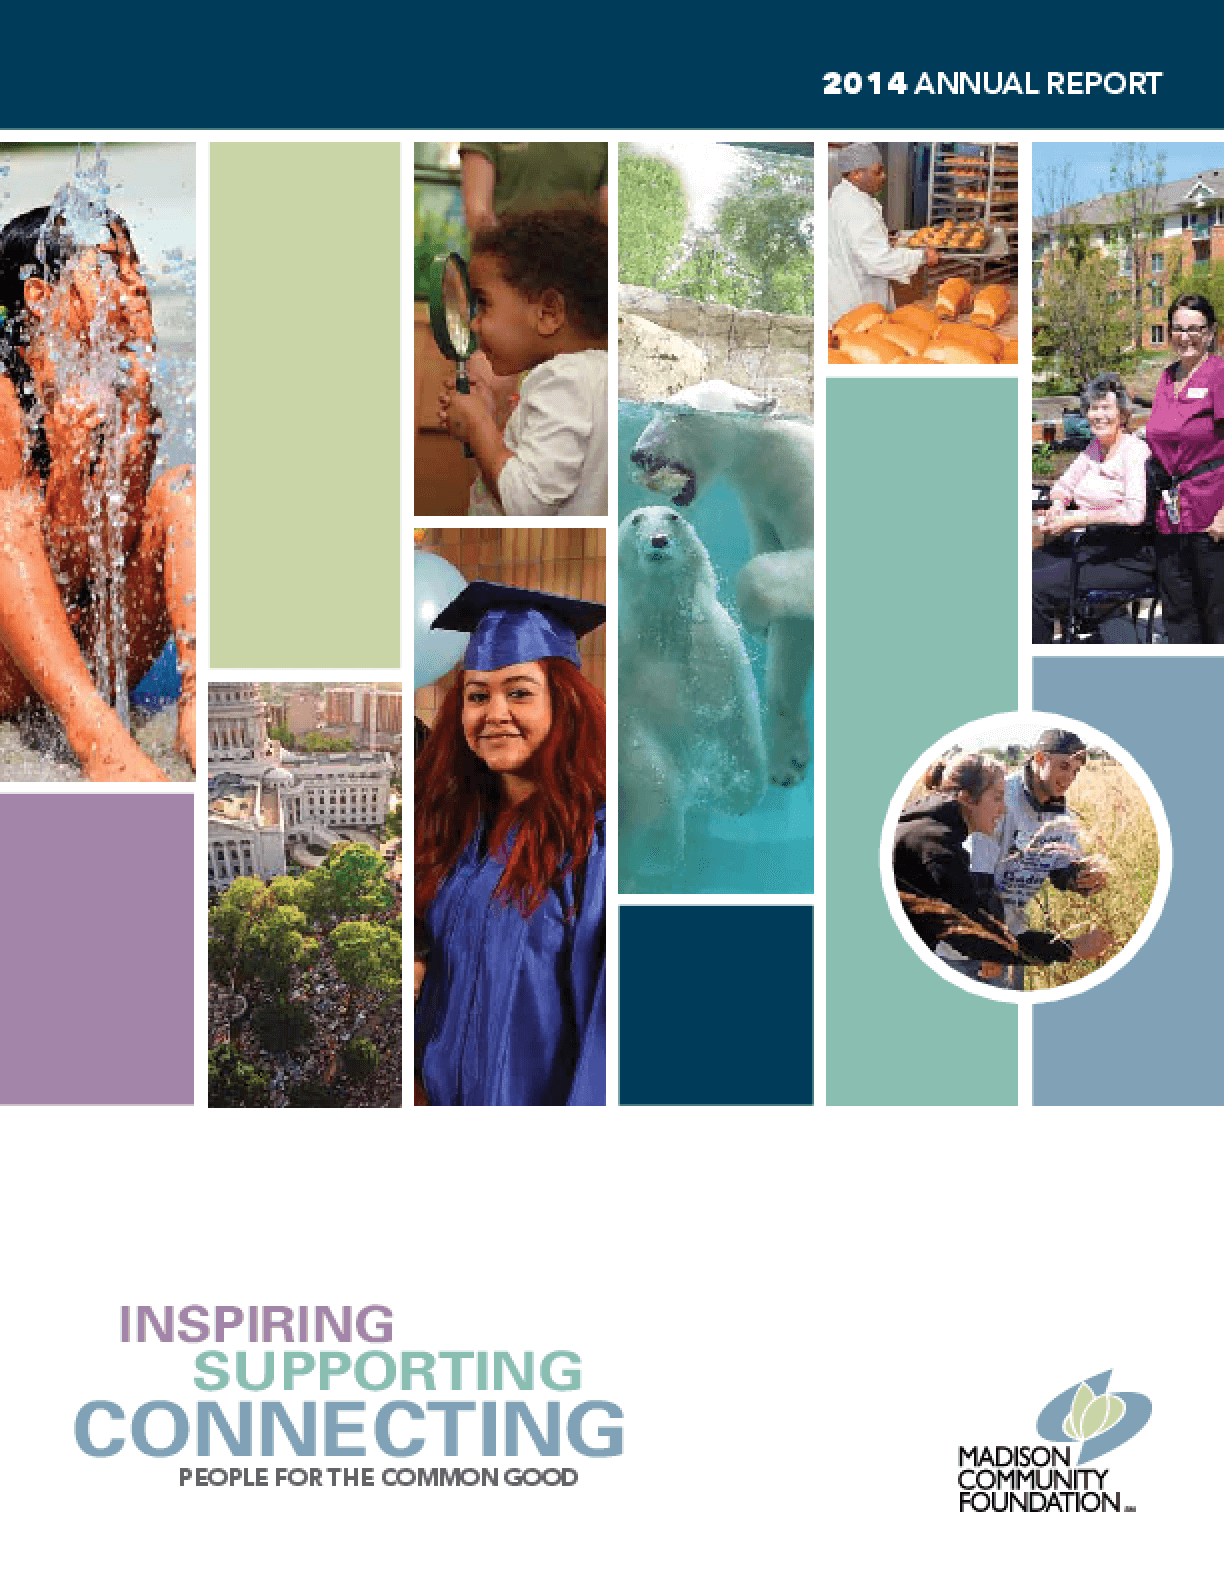 Madison Community Foundation, 2014 Annual Report